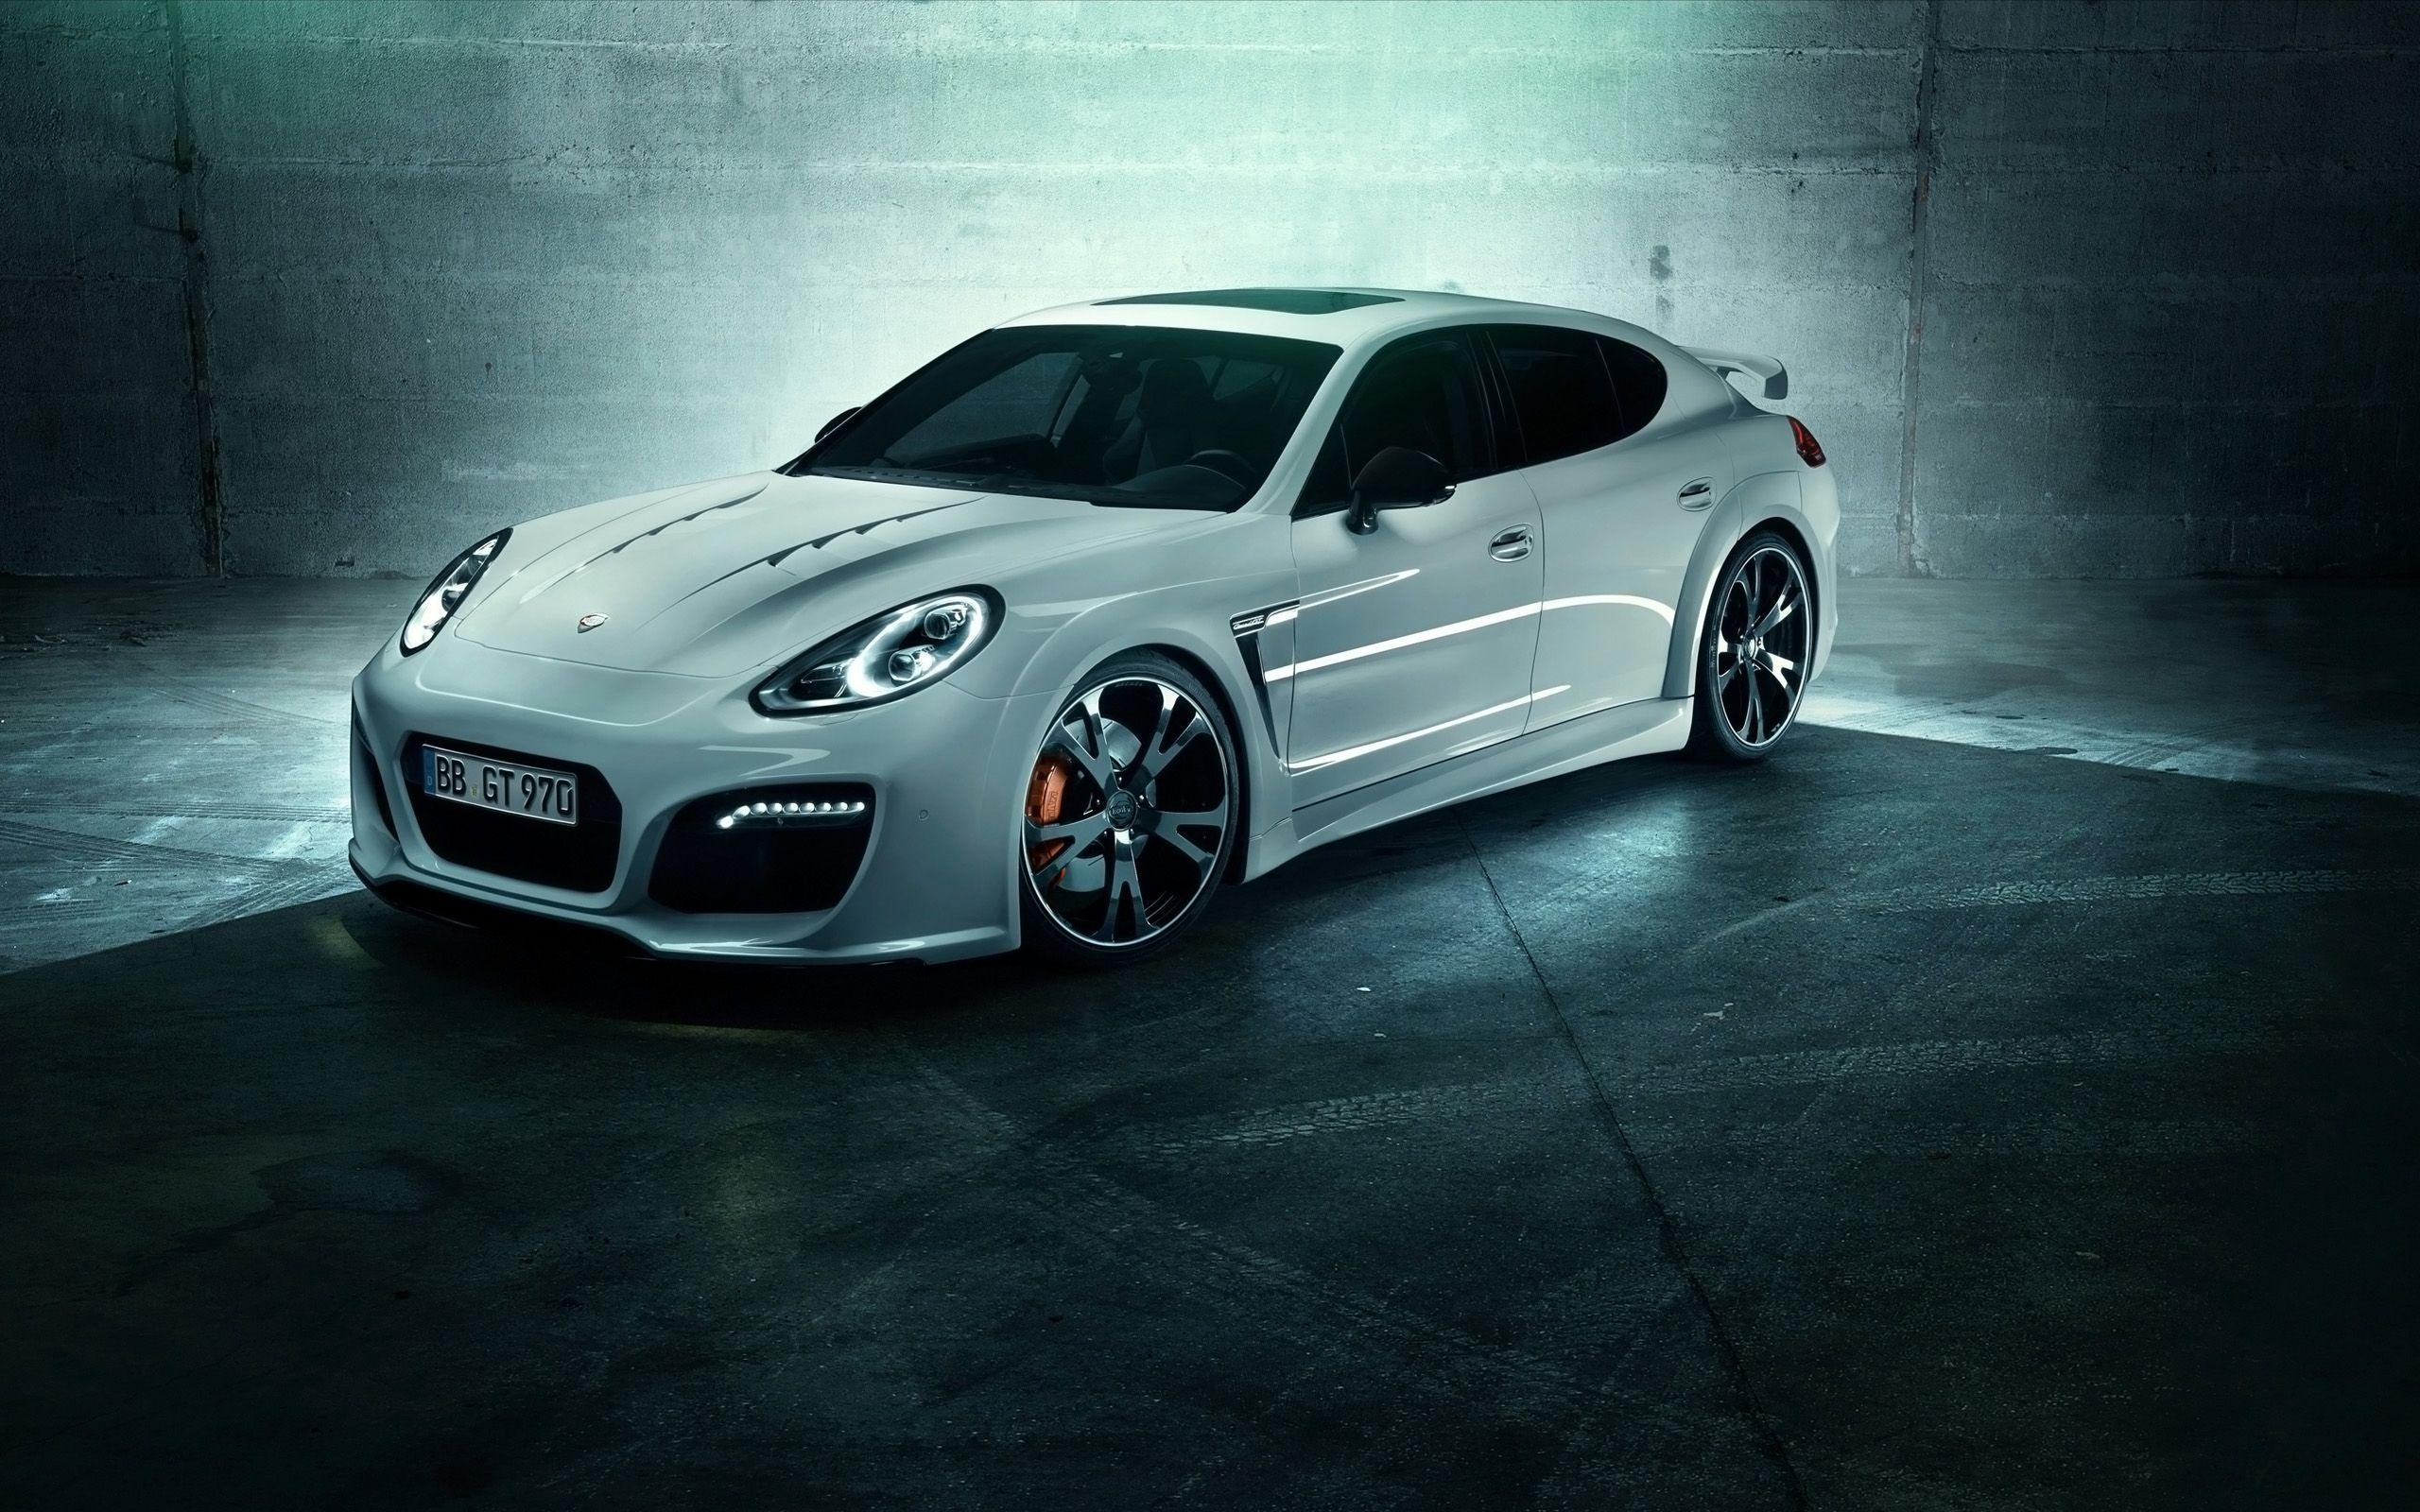 Porsche Panamera Wallpapers, Pictures, Images